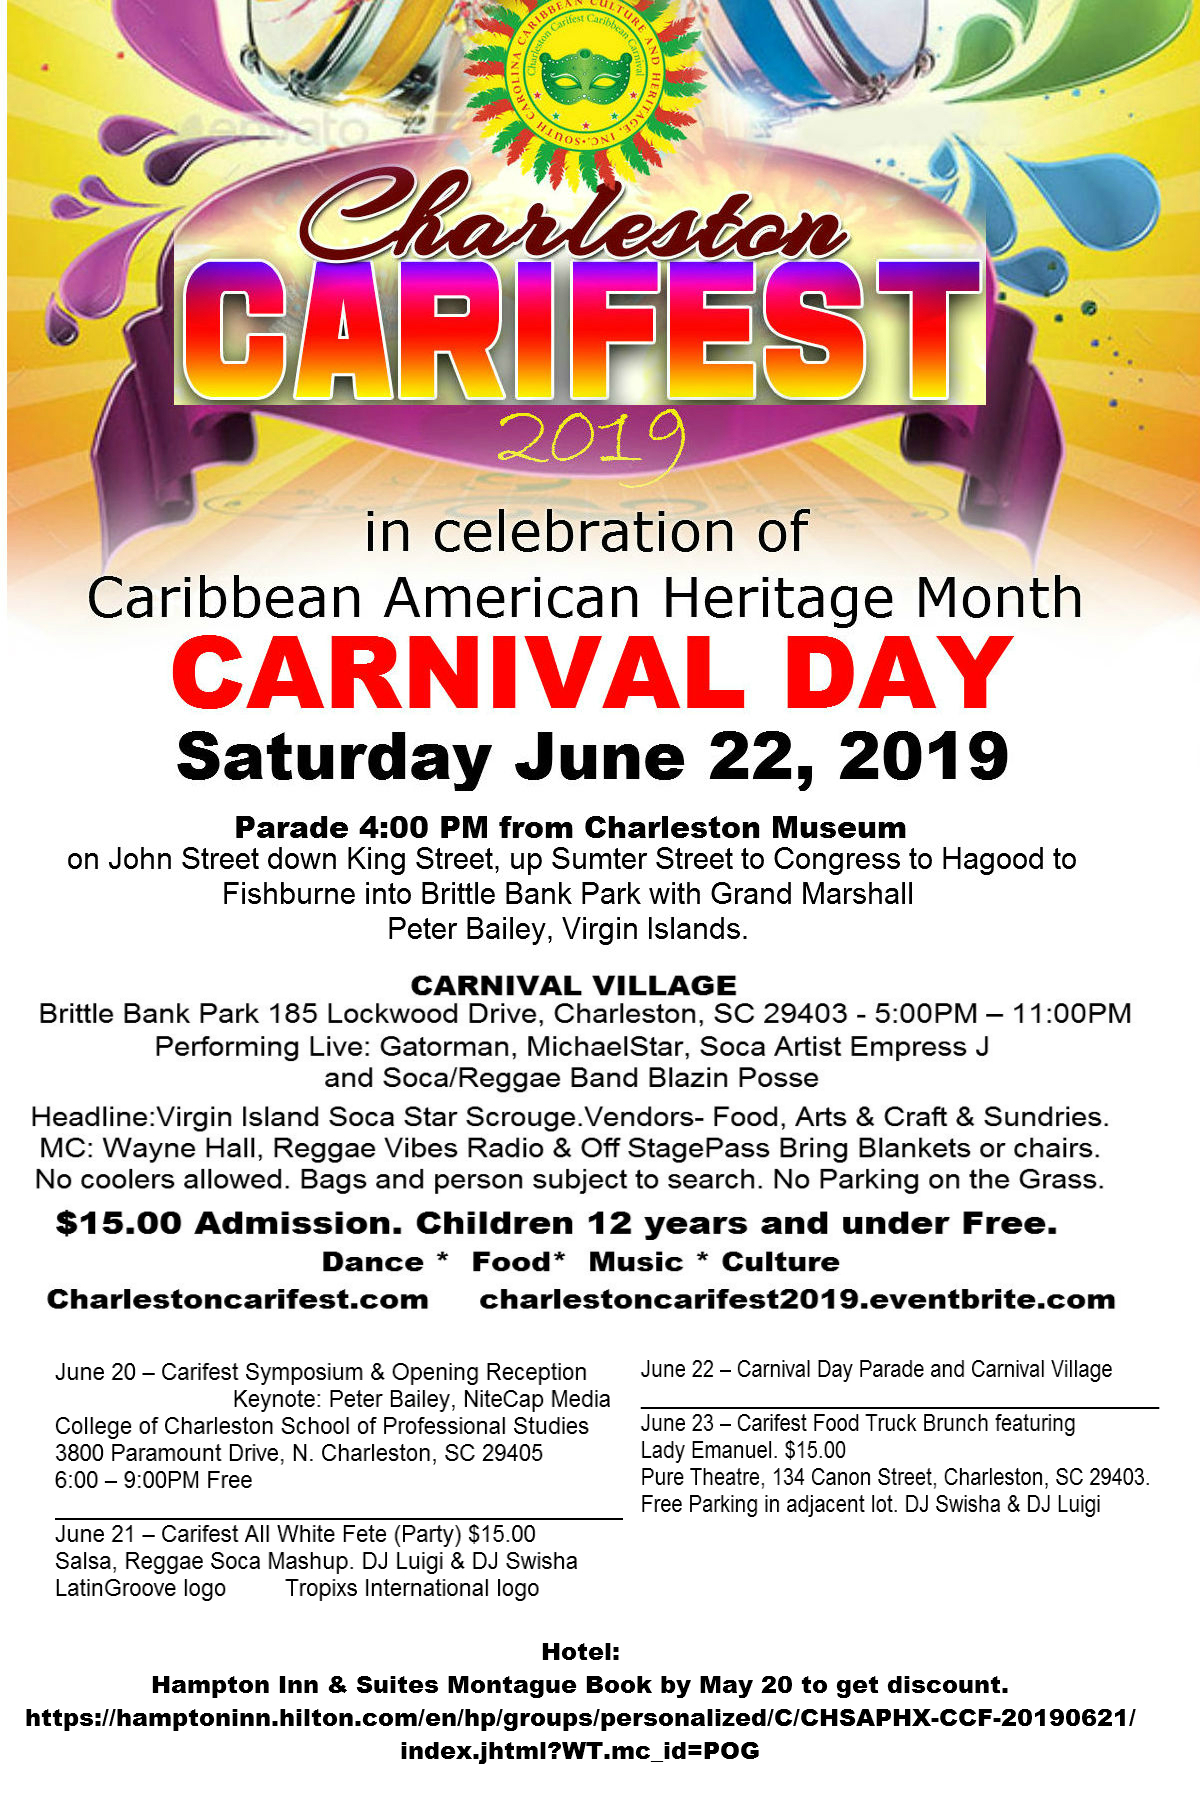 Christmas In July 2019 Virgin Gorda.Festival 2019 Charleston Carifest